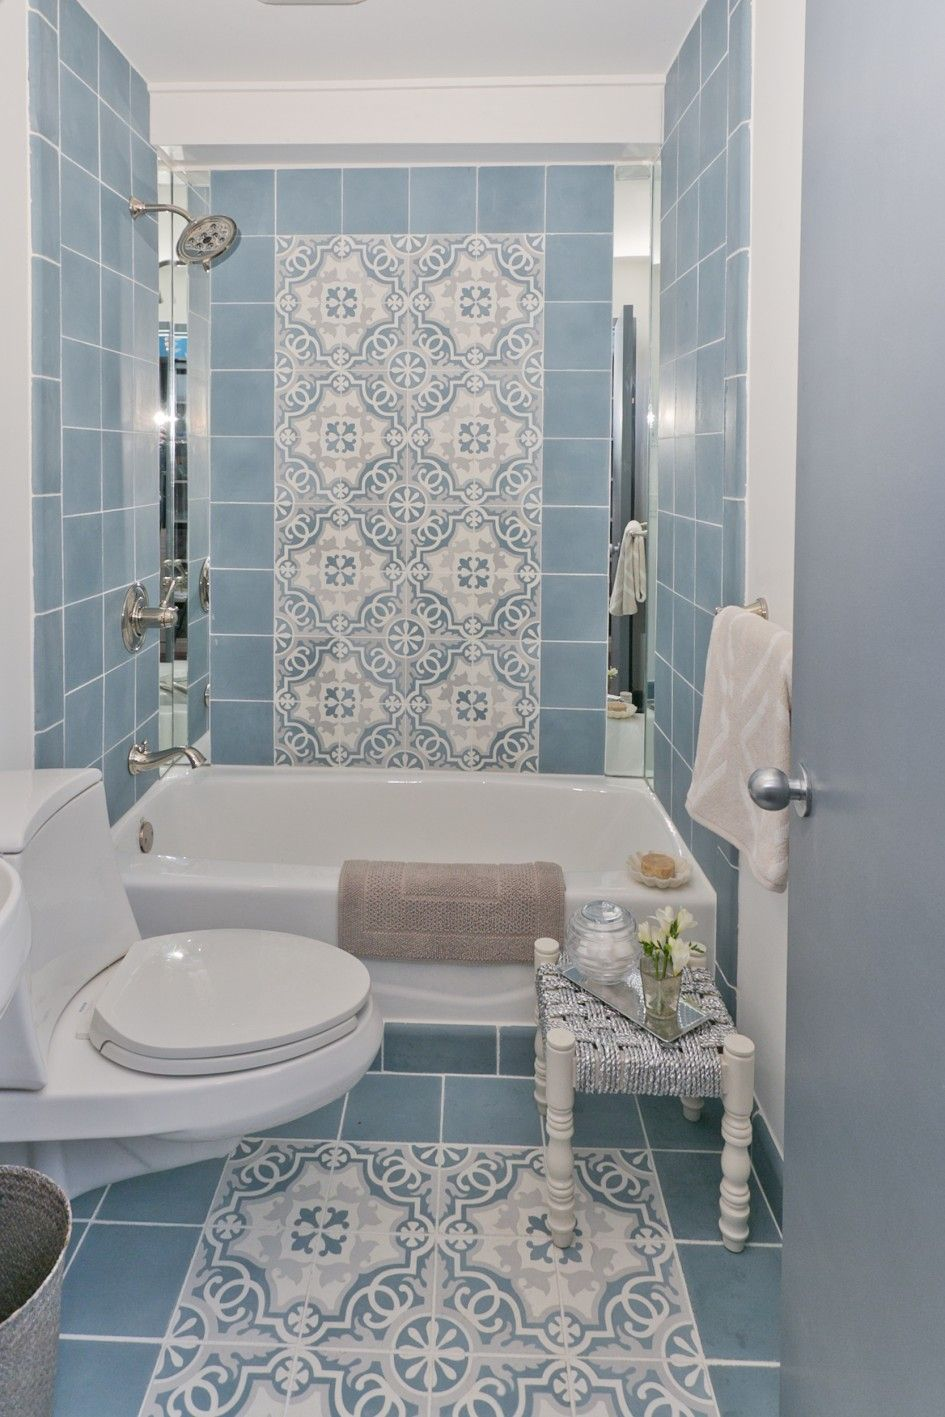 Decoration For Bathroom Tile : Beautiful minimalist blue tile pattern bathroom decor also